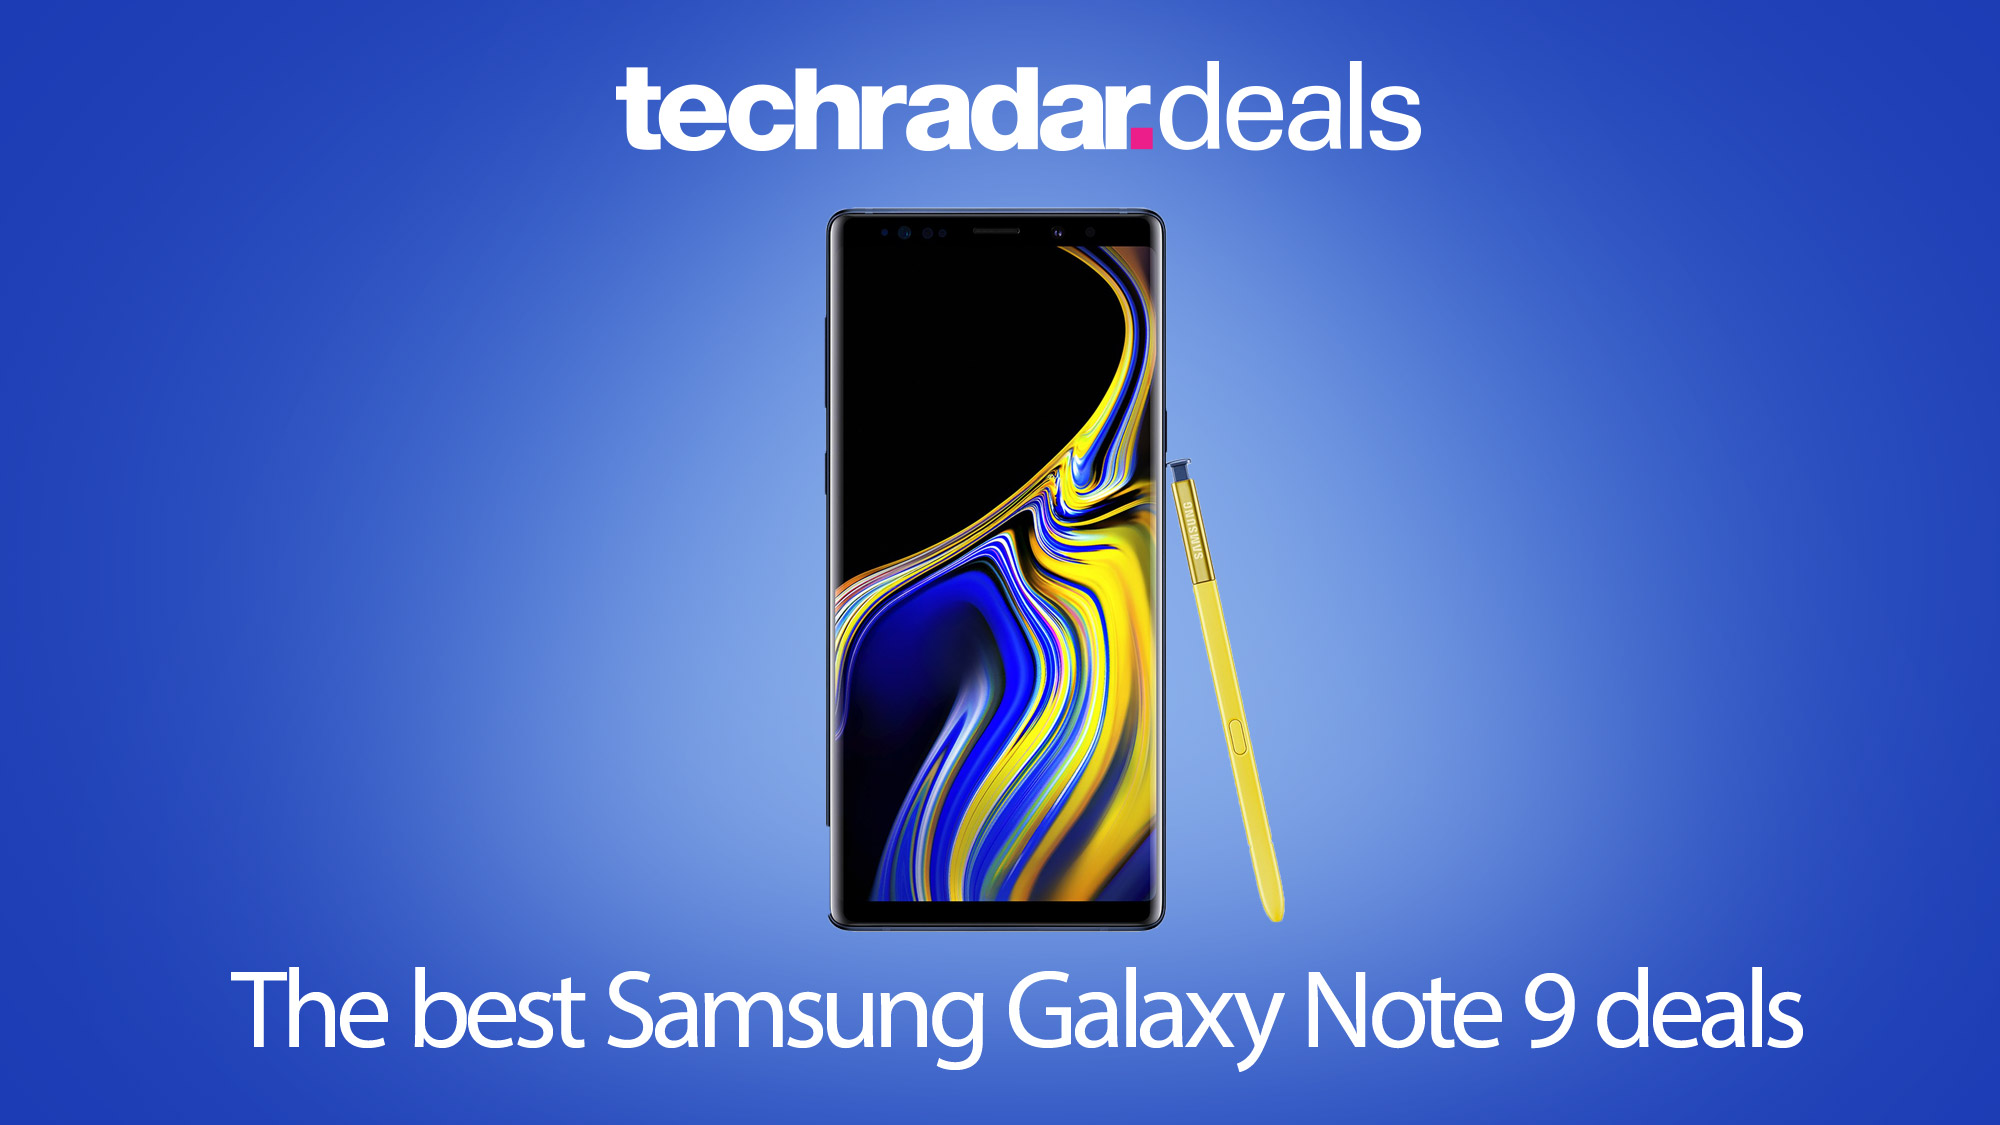 The best Samsung Galaxy Note 9 deals in September 2019